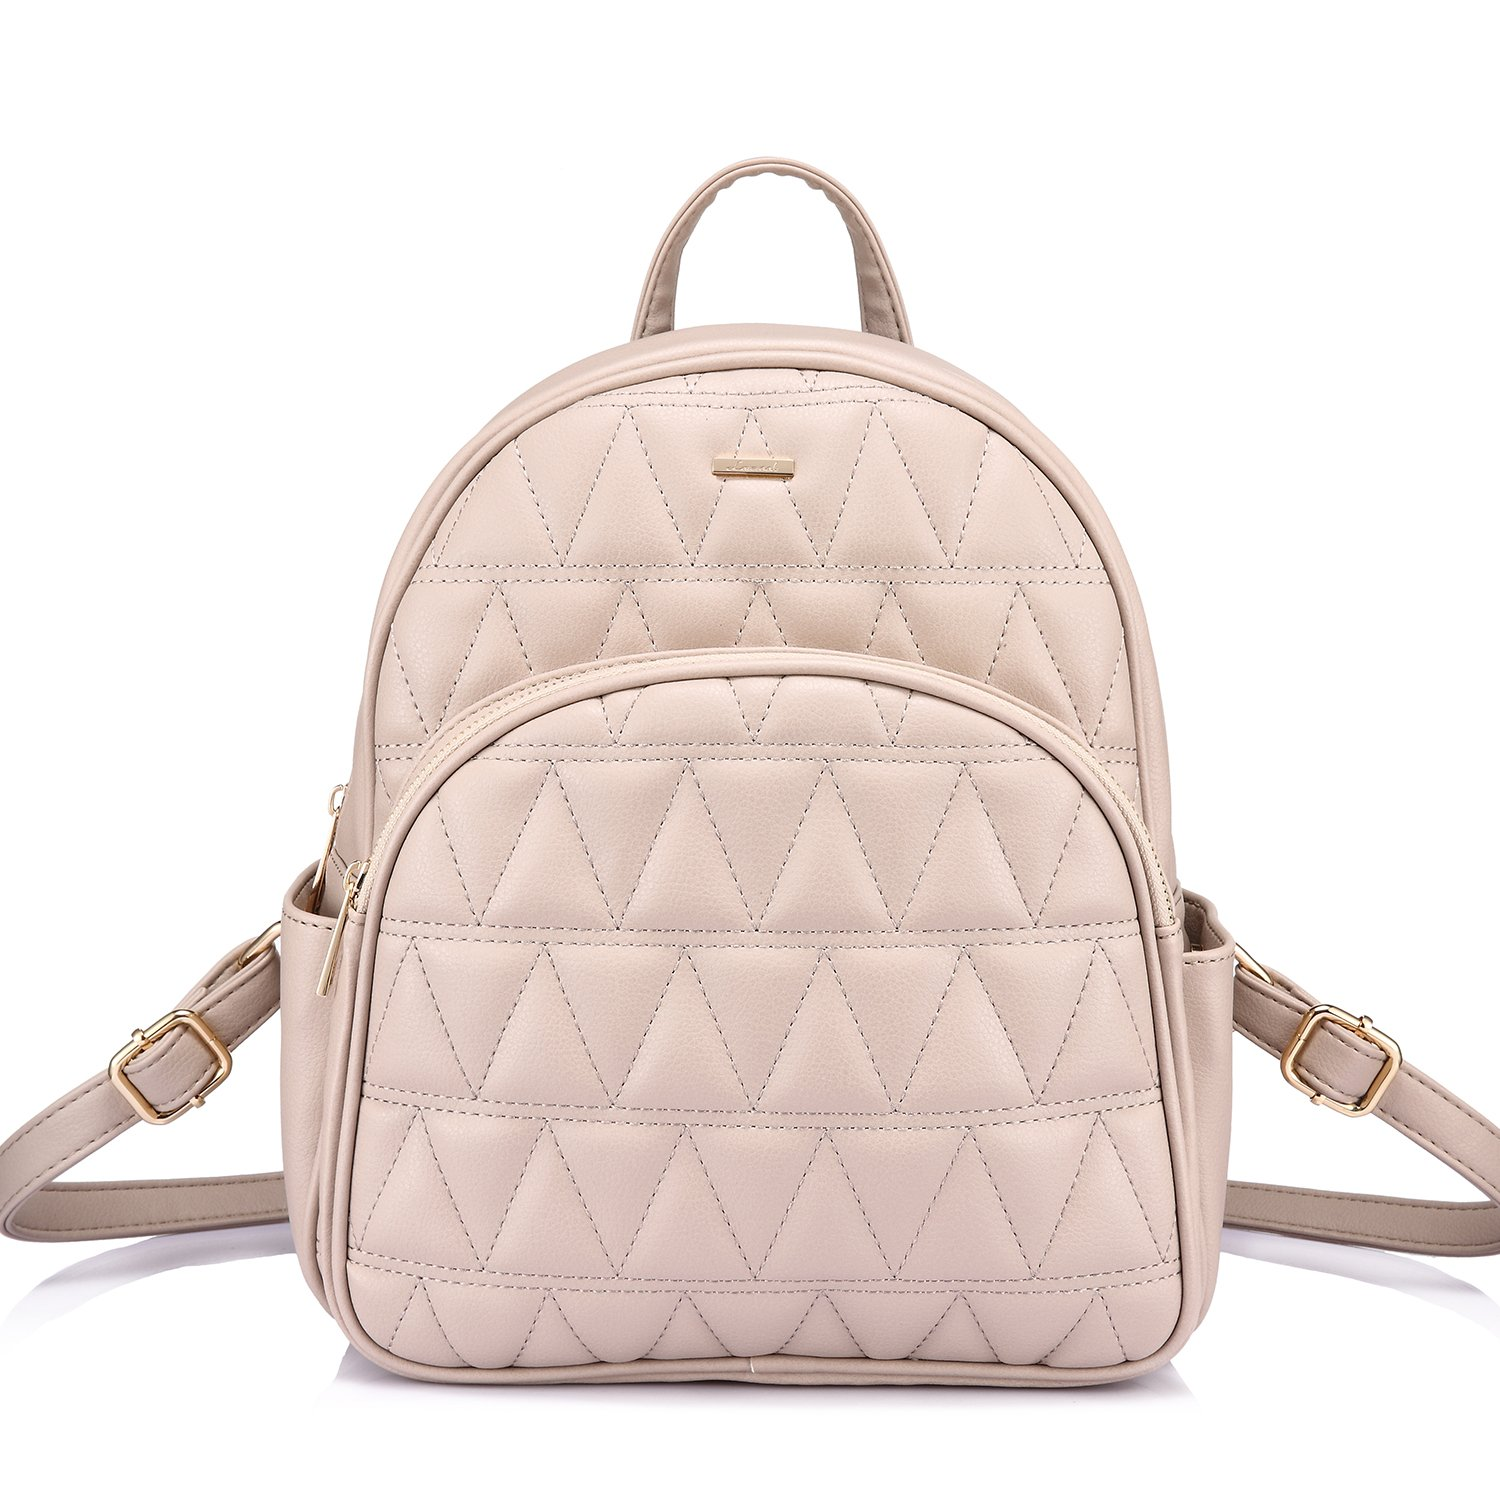 LOVEVOOK Backpack Purse Quilted Casual Backpacks for Women Beige-1